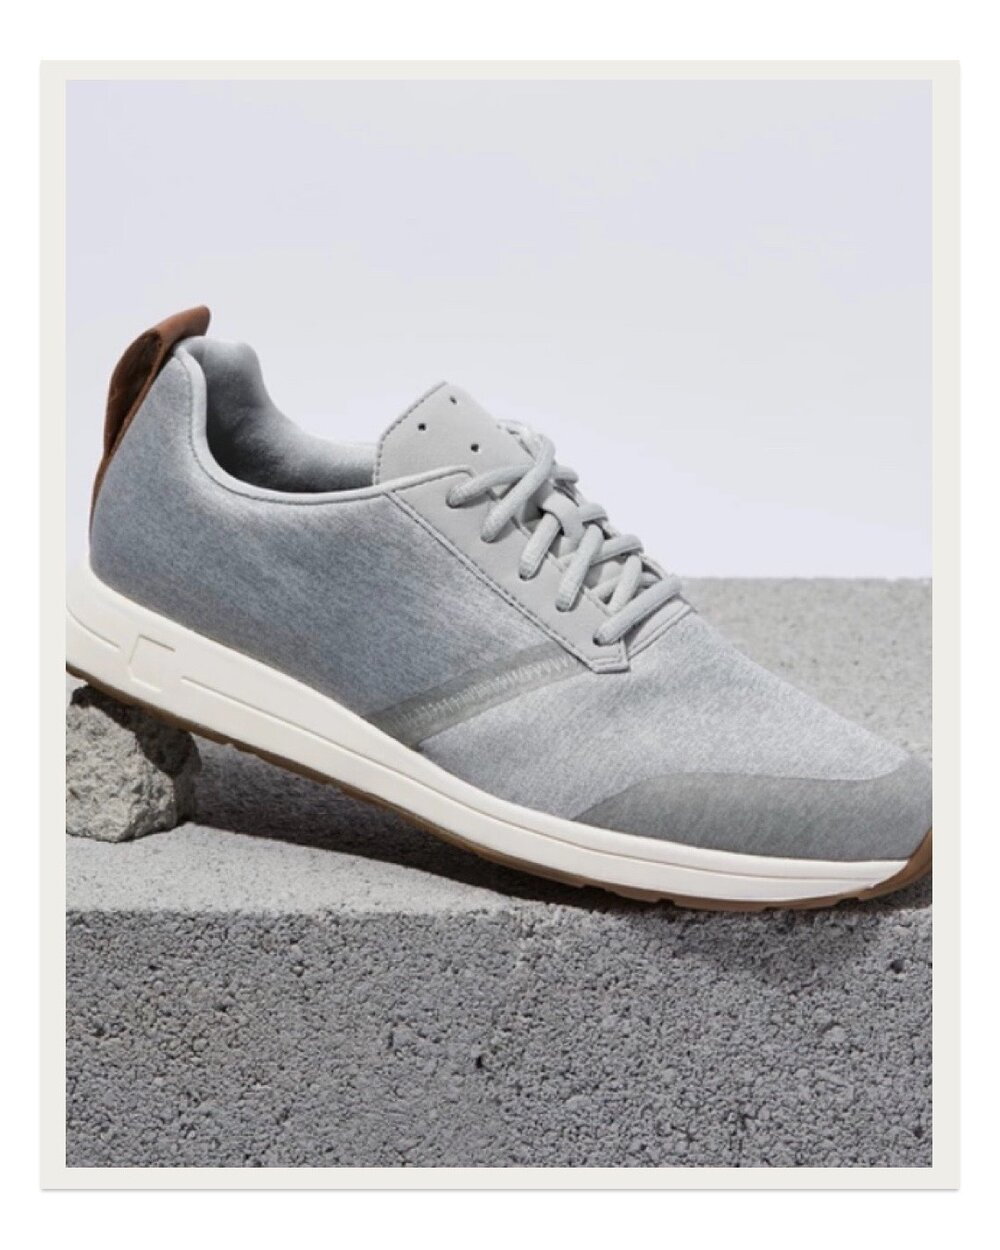 """I never knew sneakers could be considered cozy until I found these York Athletics """"The Henry"""" Sweatshirt Sneakers. They truly feel like wearing slippers and while they're great for everyday wear, they are also totally suitable for working out so they are incredibly functional. Once you put them on you'll never want to take them off! I also love that this is a small company manufacturing their sneakers in New England using quality materials."""